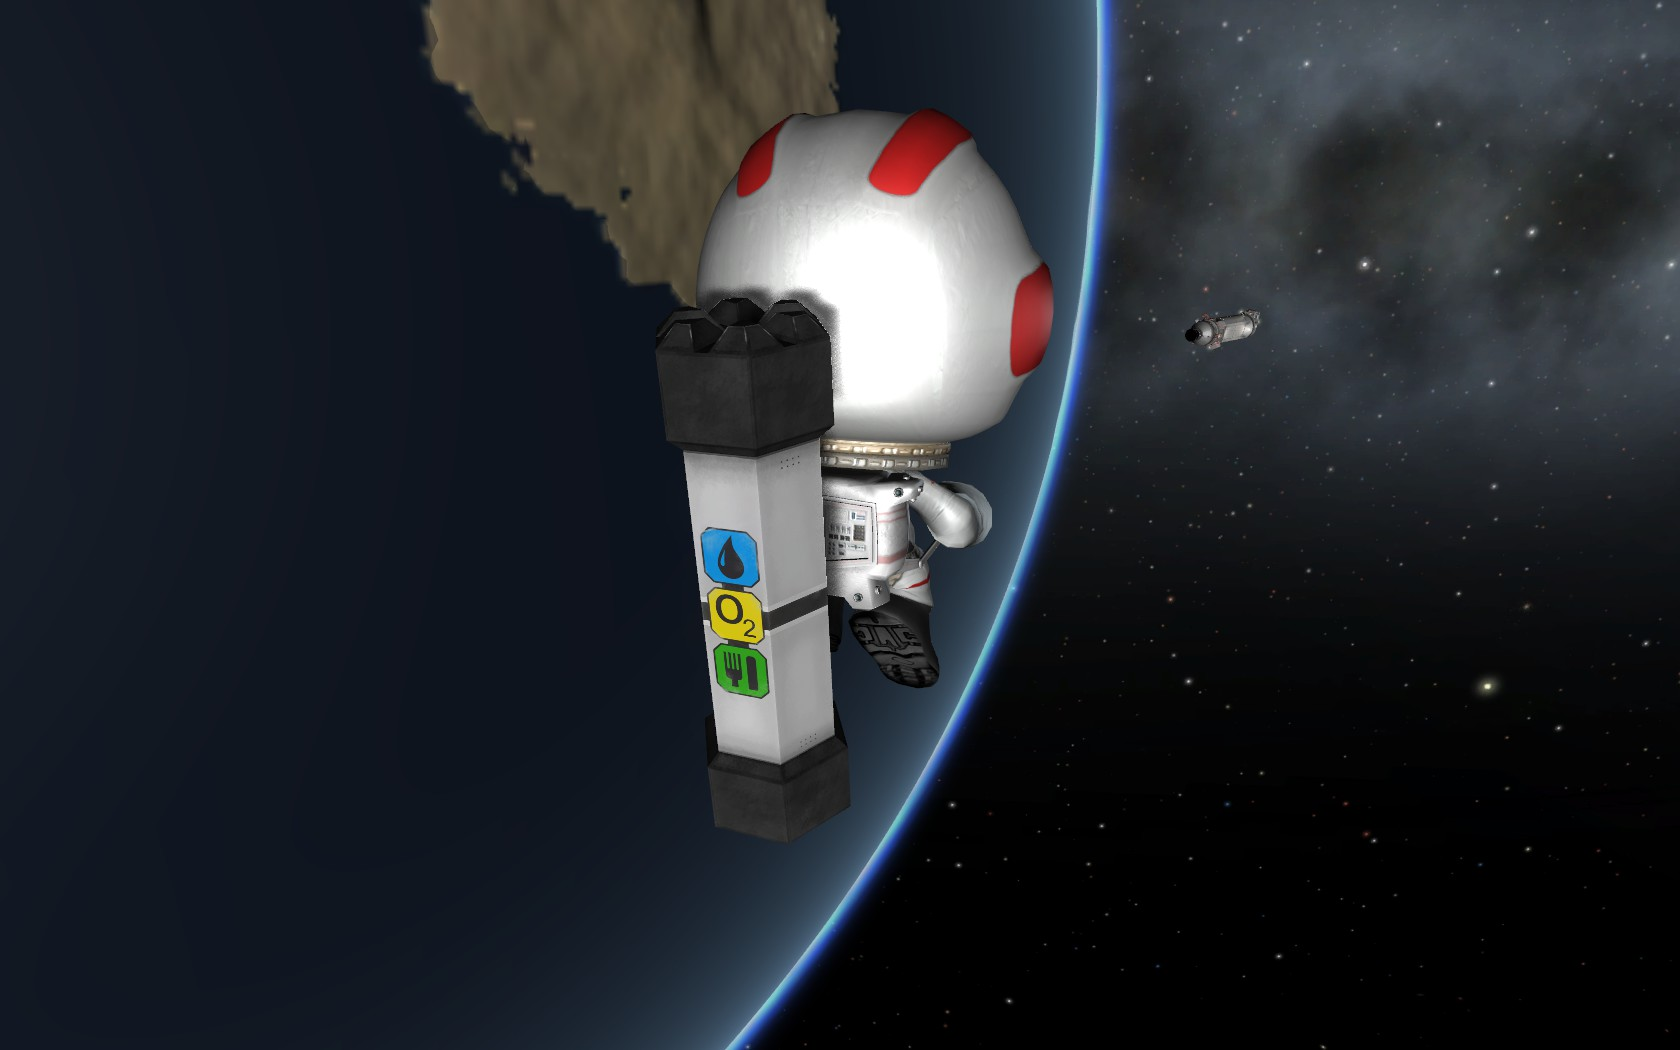 GitHub - dankeller/KSP-Tweaks: Settings to extend Kerbal ...